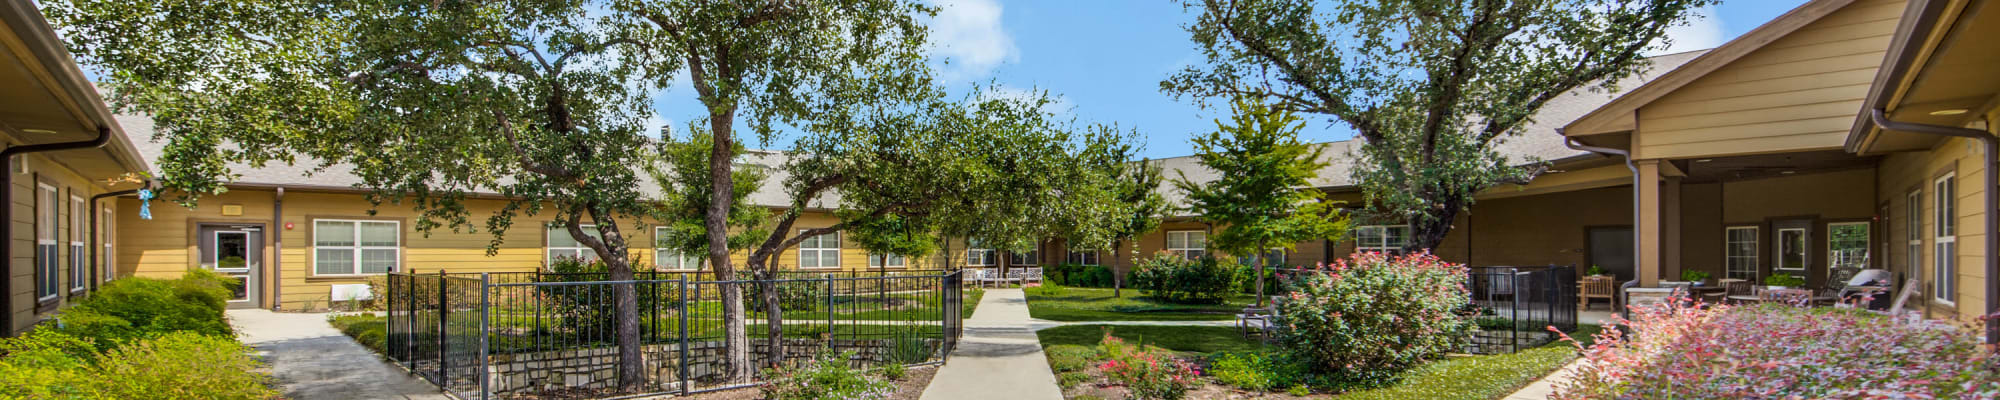 Features and amenities at The Landing at Stone Oak in San Antonio, Texas